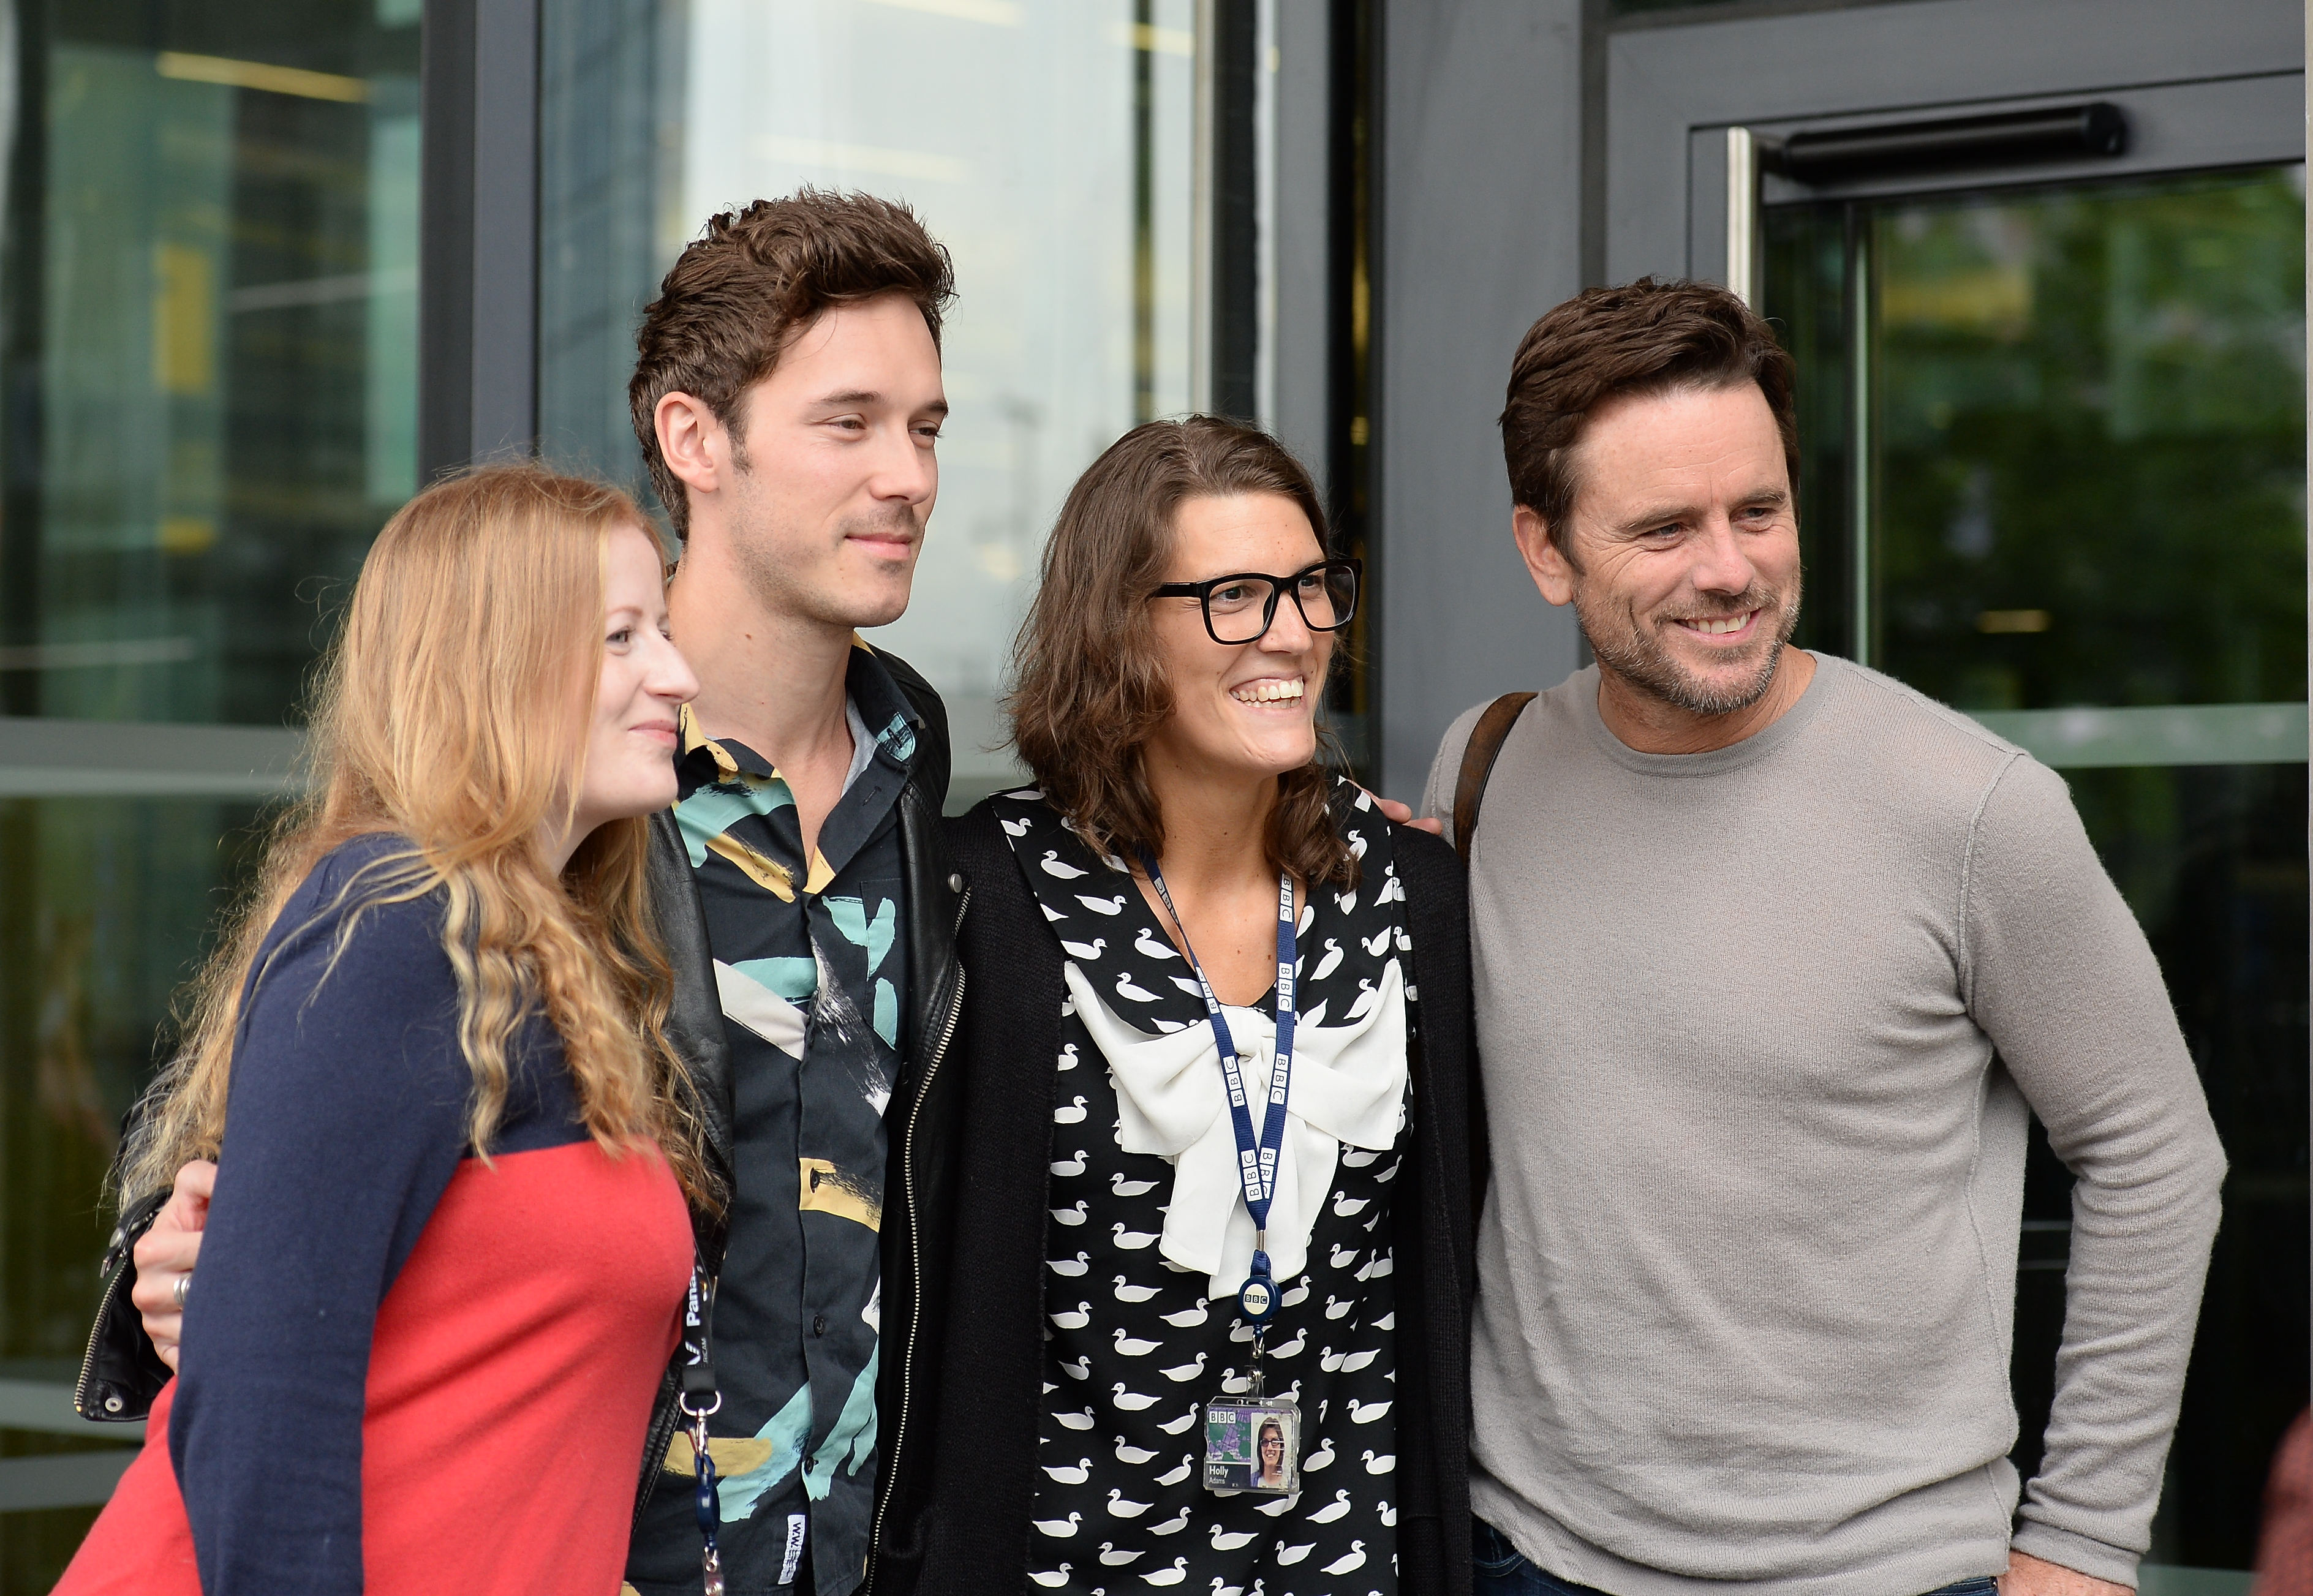 The cast of 'Nashville' arrive at the BBC Breakfast studios at MediaCityUK before appearing on the show Featuring: Sam Palladio, Charles Esten Where: Manchester, United Kingdom When: 13 Jun 2016 Credit: Steve Searle/WENN.com